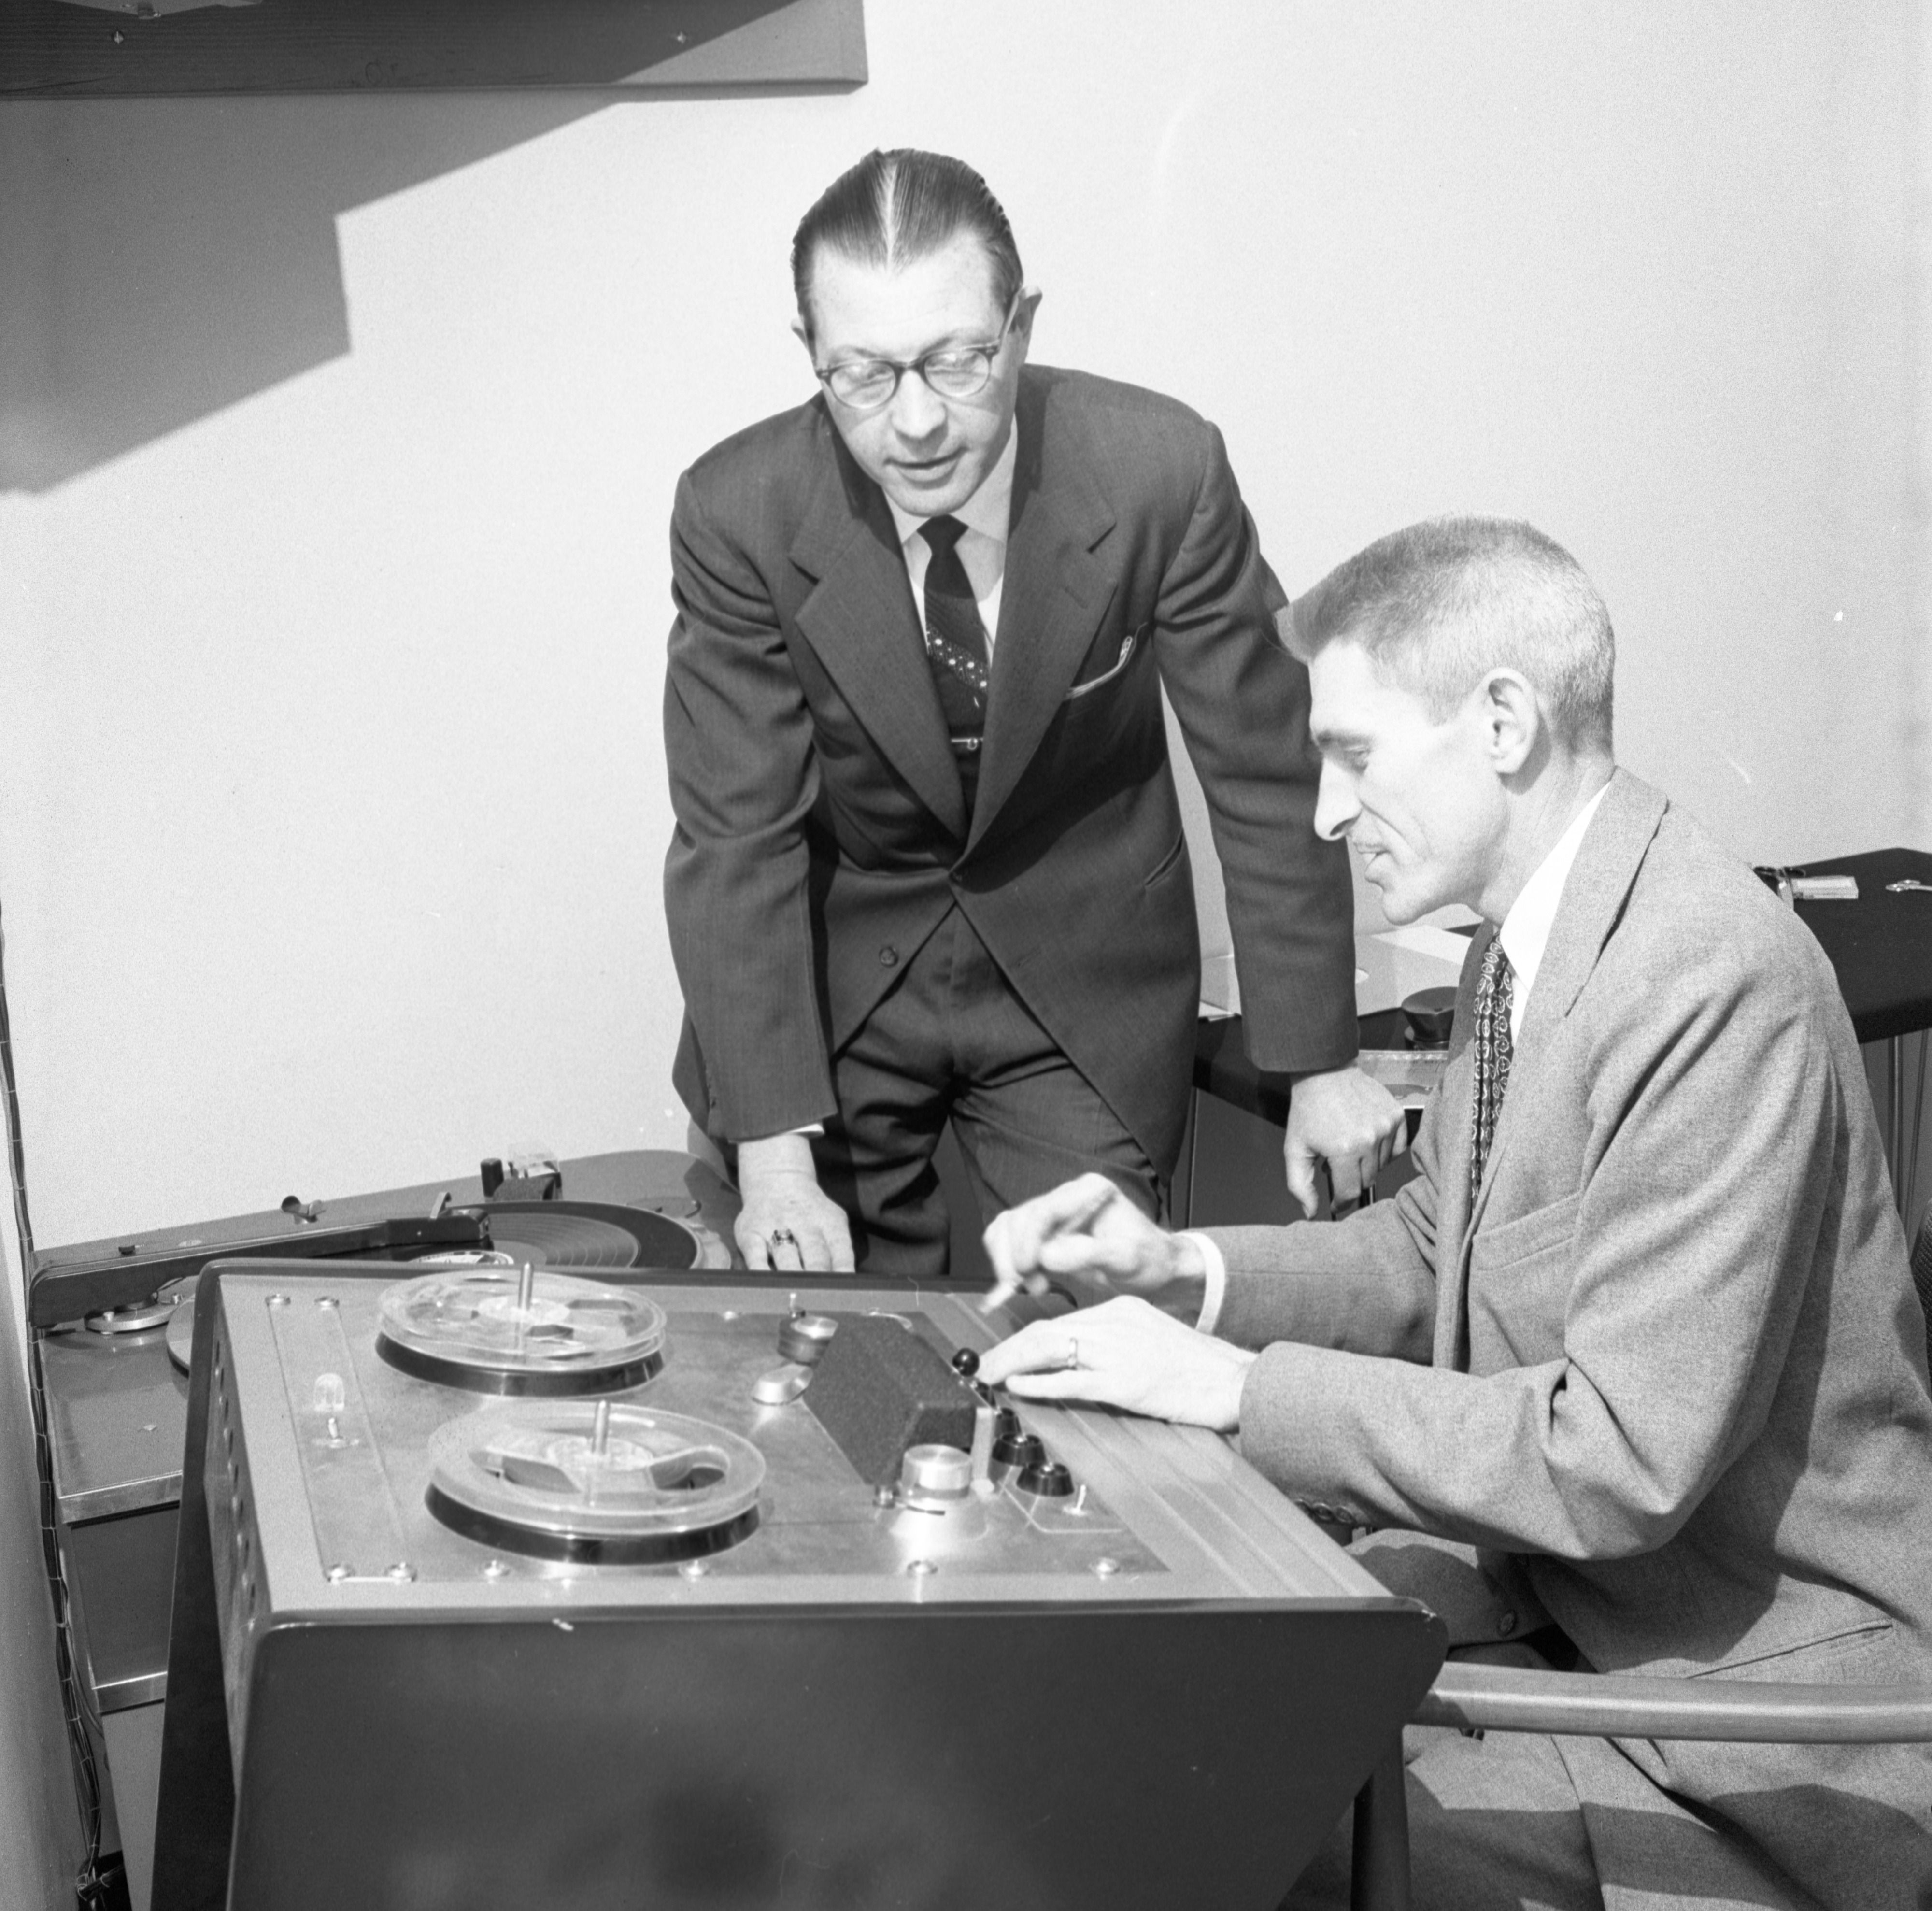 Music Preparation For Ann Arbor Figure Skating Club 'Melody On Ice' Show, March 1959 image